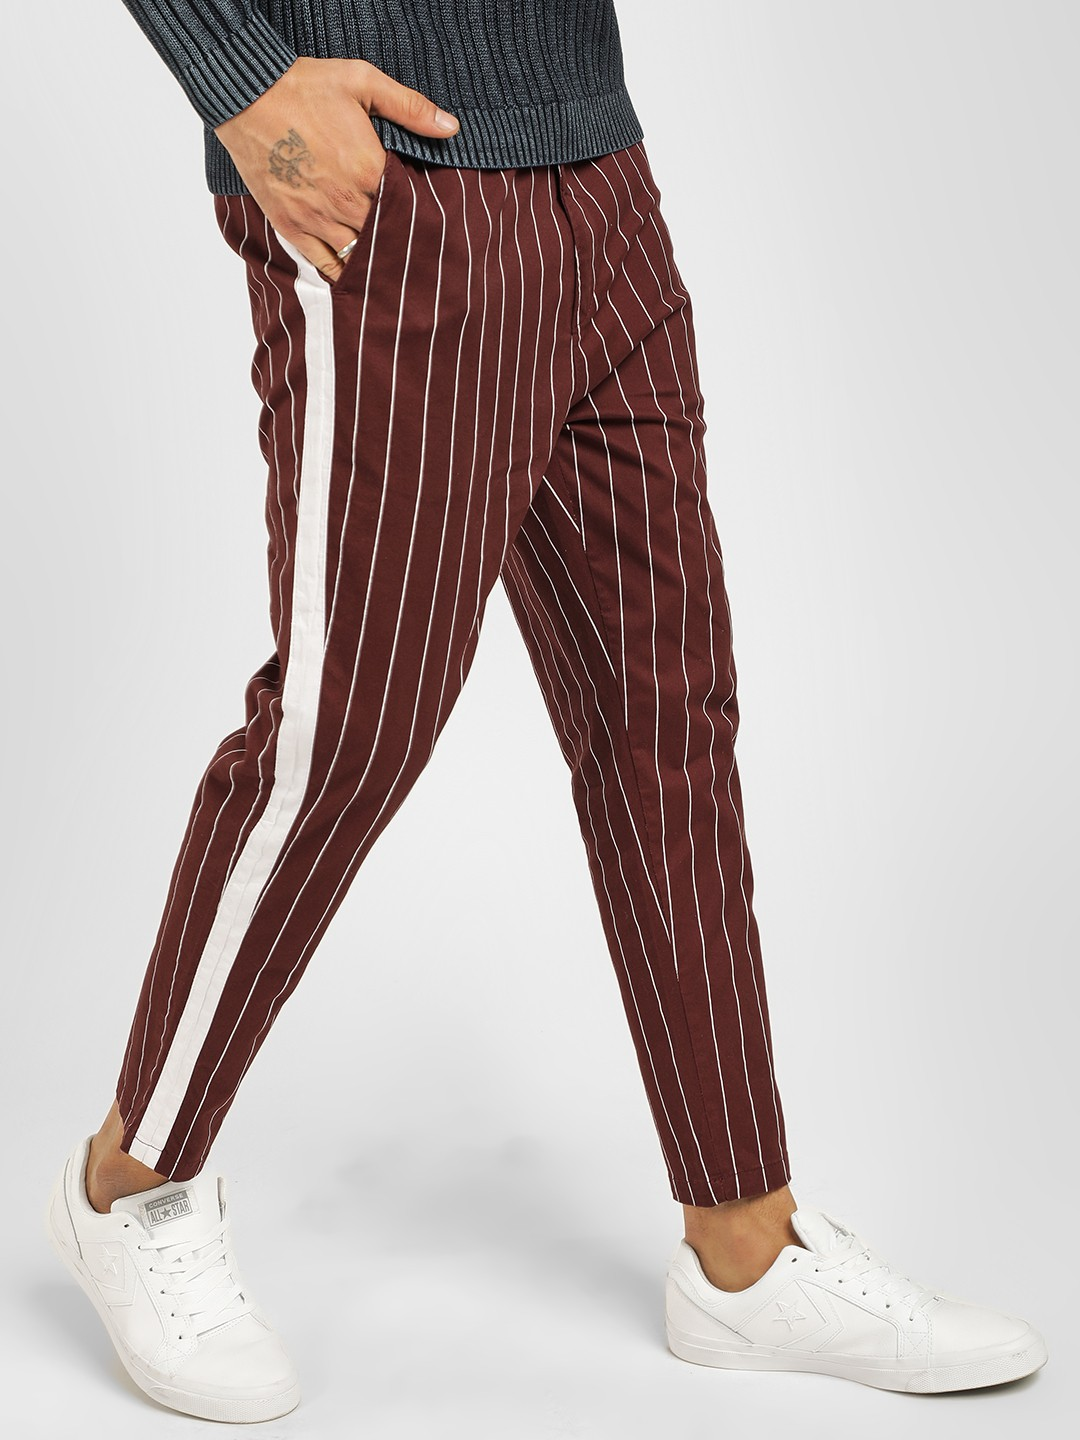 Spring Break Maroon Contrast Tape Striped Crop Trousers 1